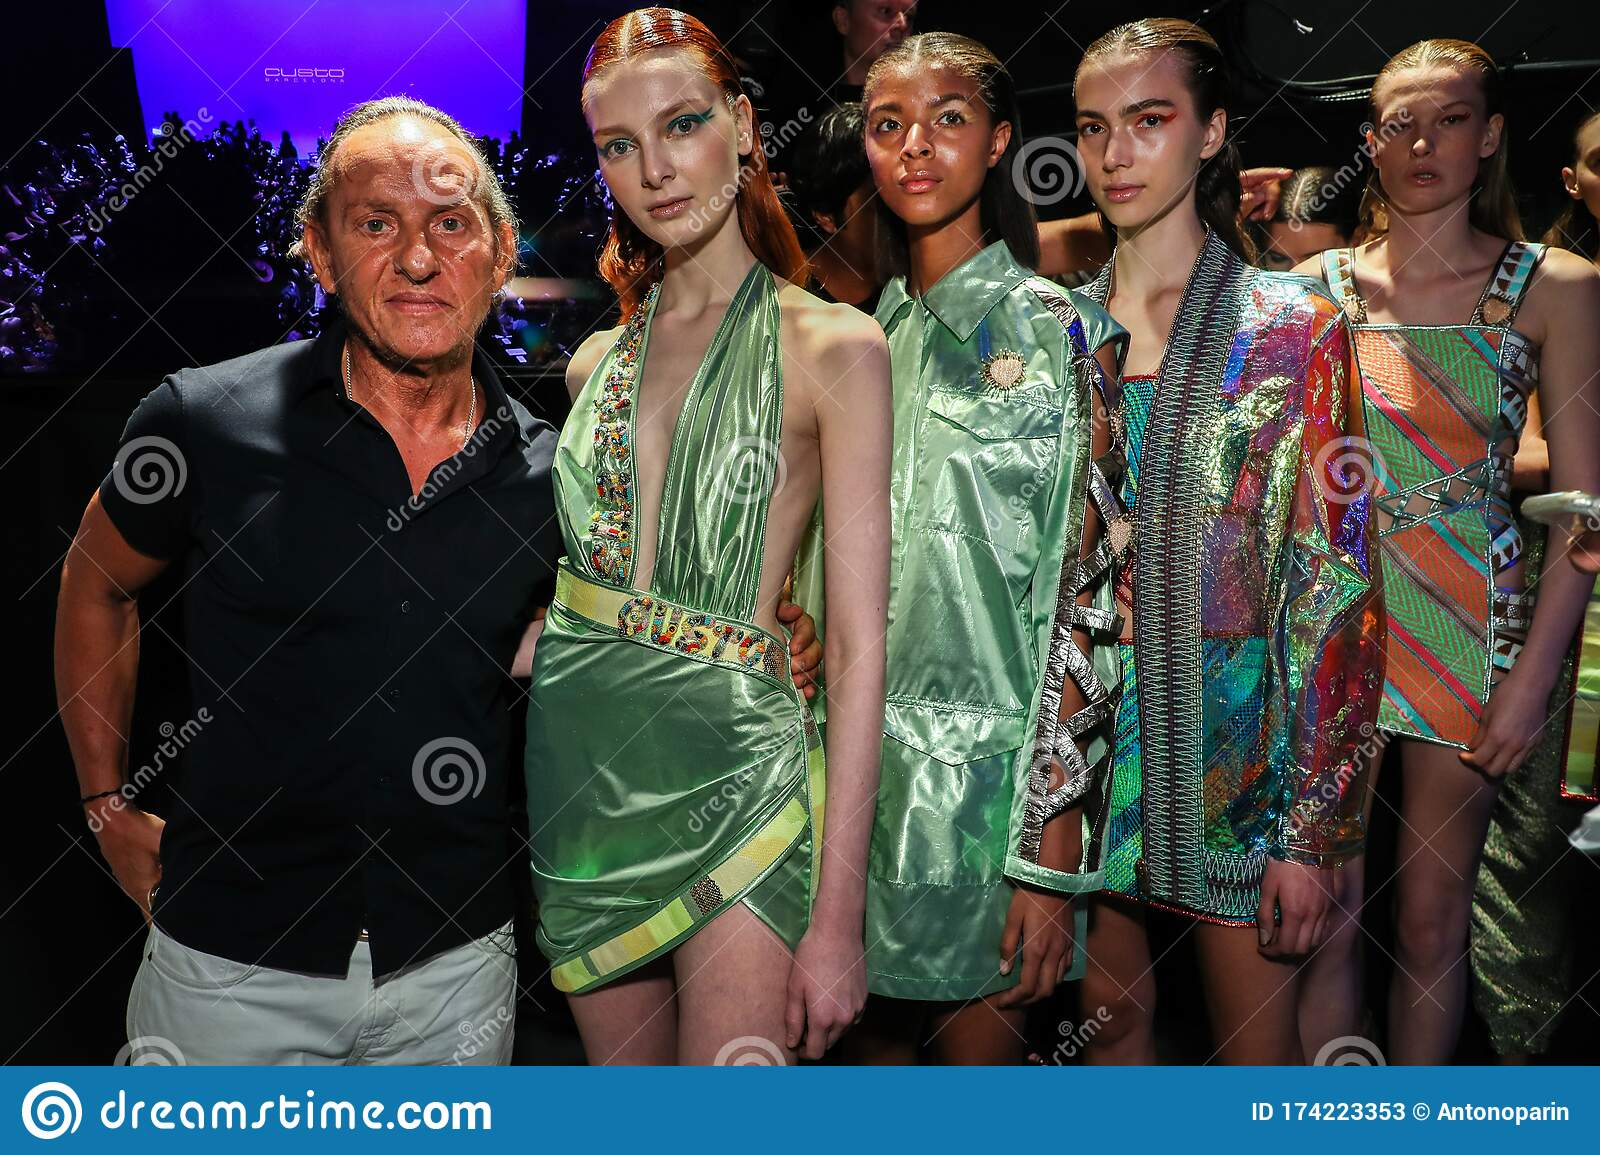 Designer And Models Posing Backstage Before The Custo Barcelona Show During New York Fashion Week Editorial Stock Photo Image Of 2020 Ready 174223353